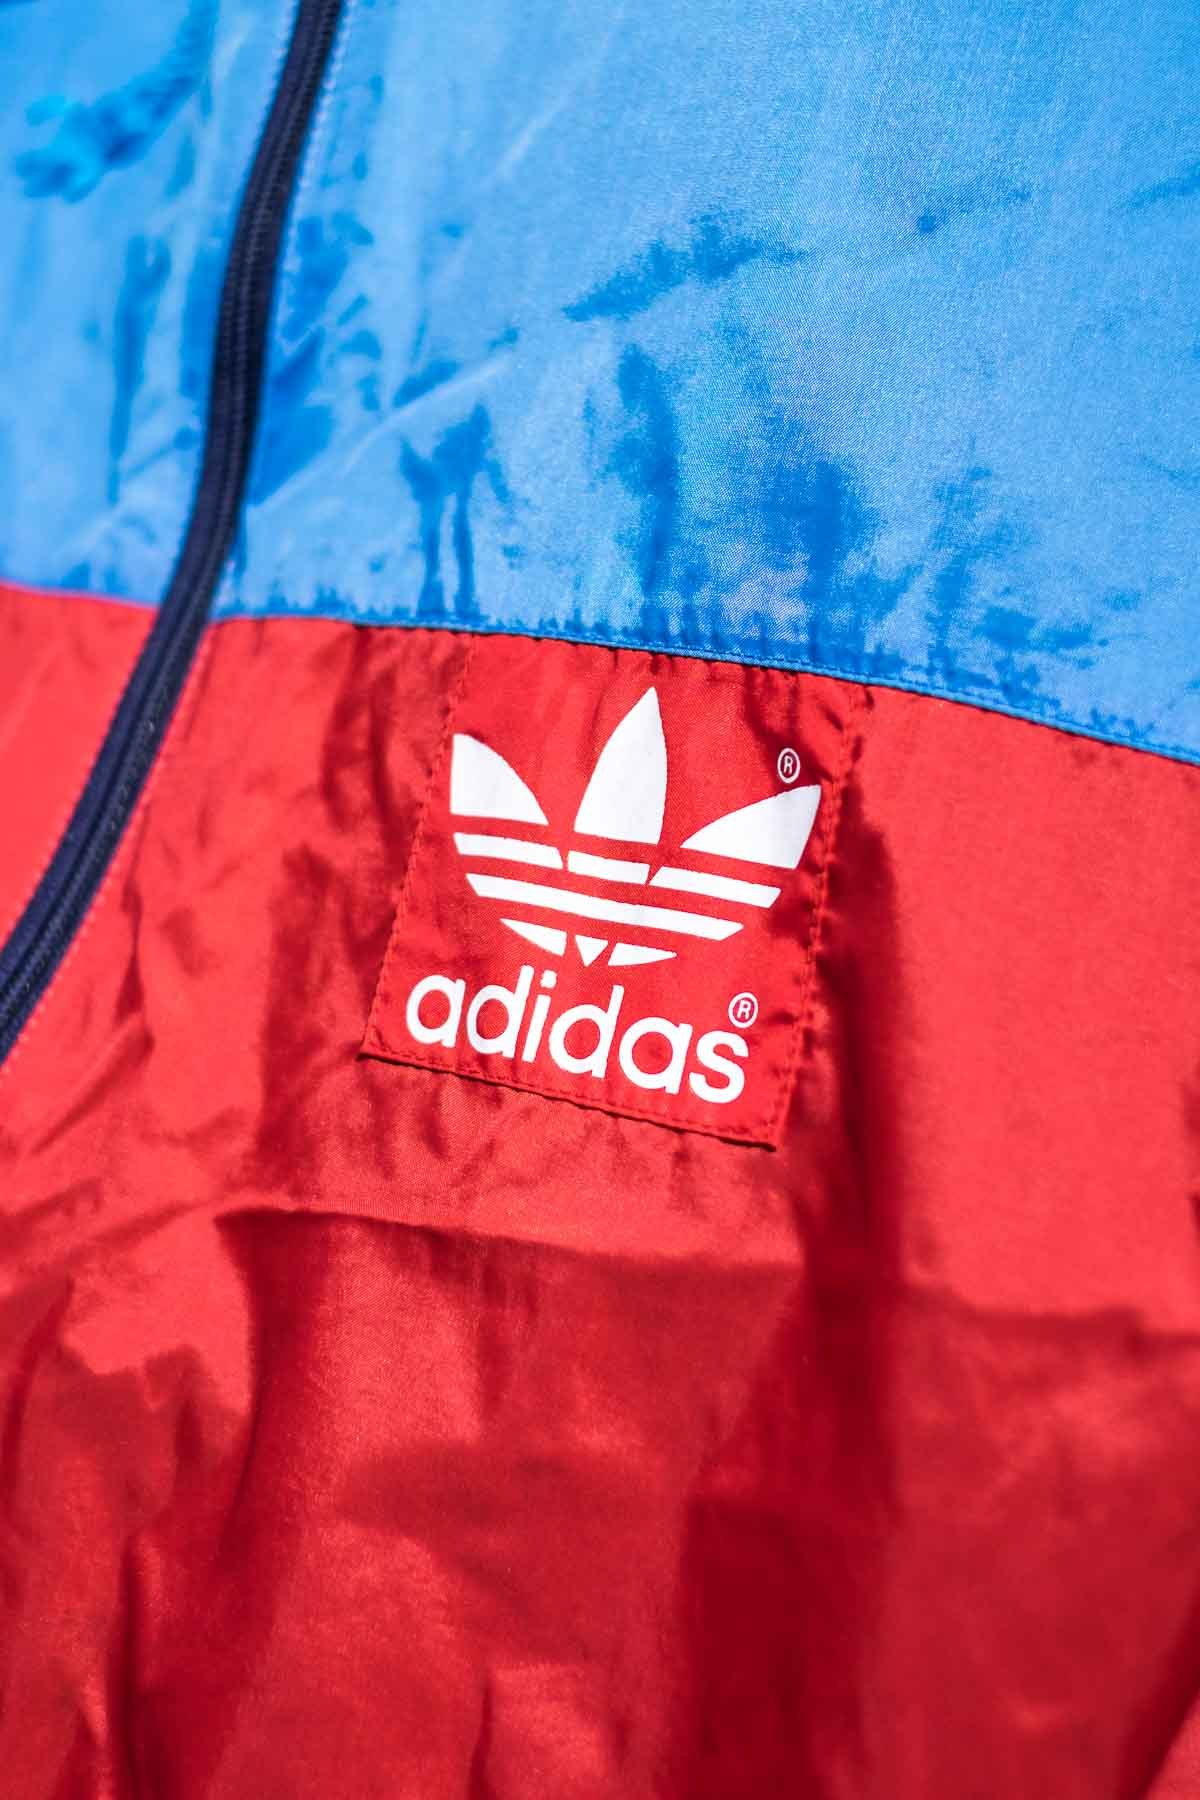 Adidas GIACCA A VENTO VINTAGE 90S Azzurro-Rosso